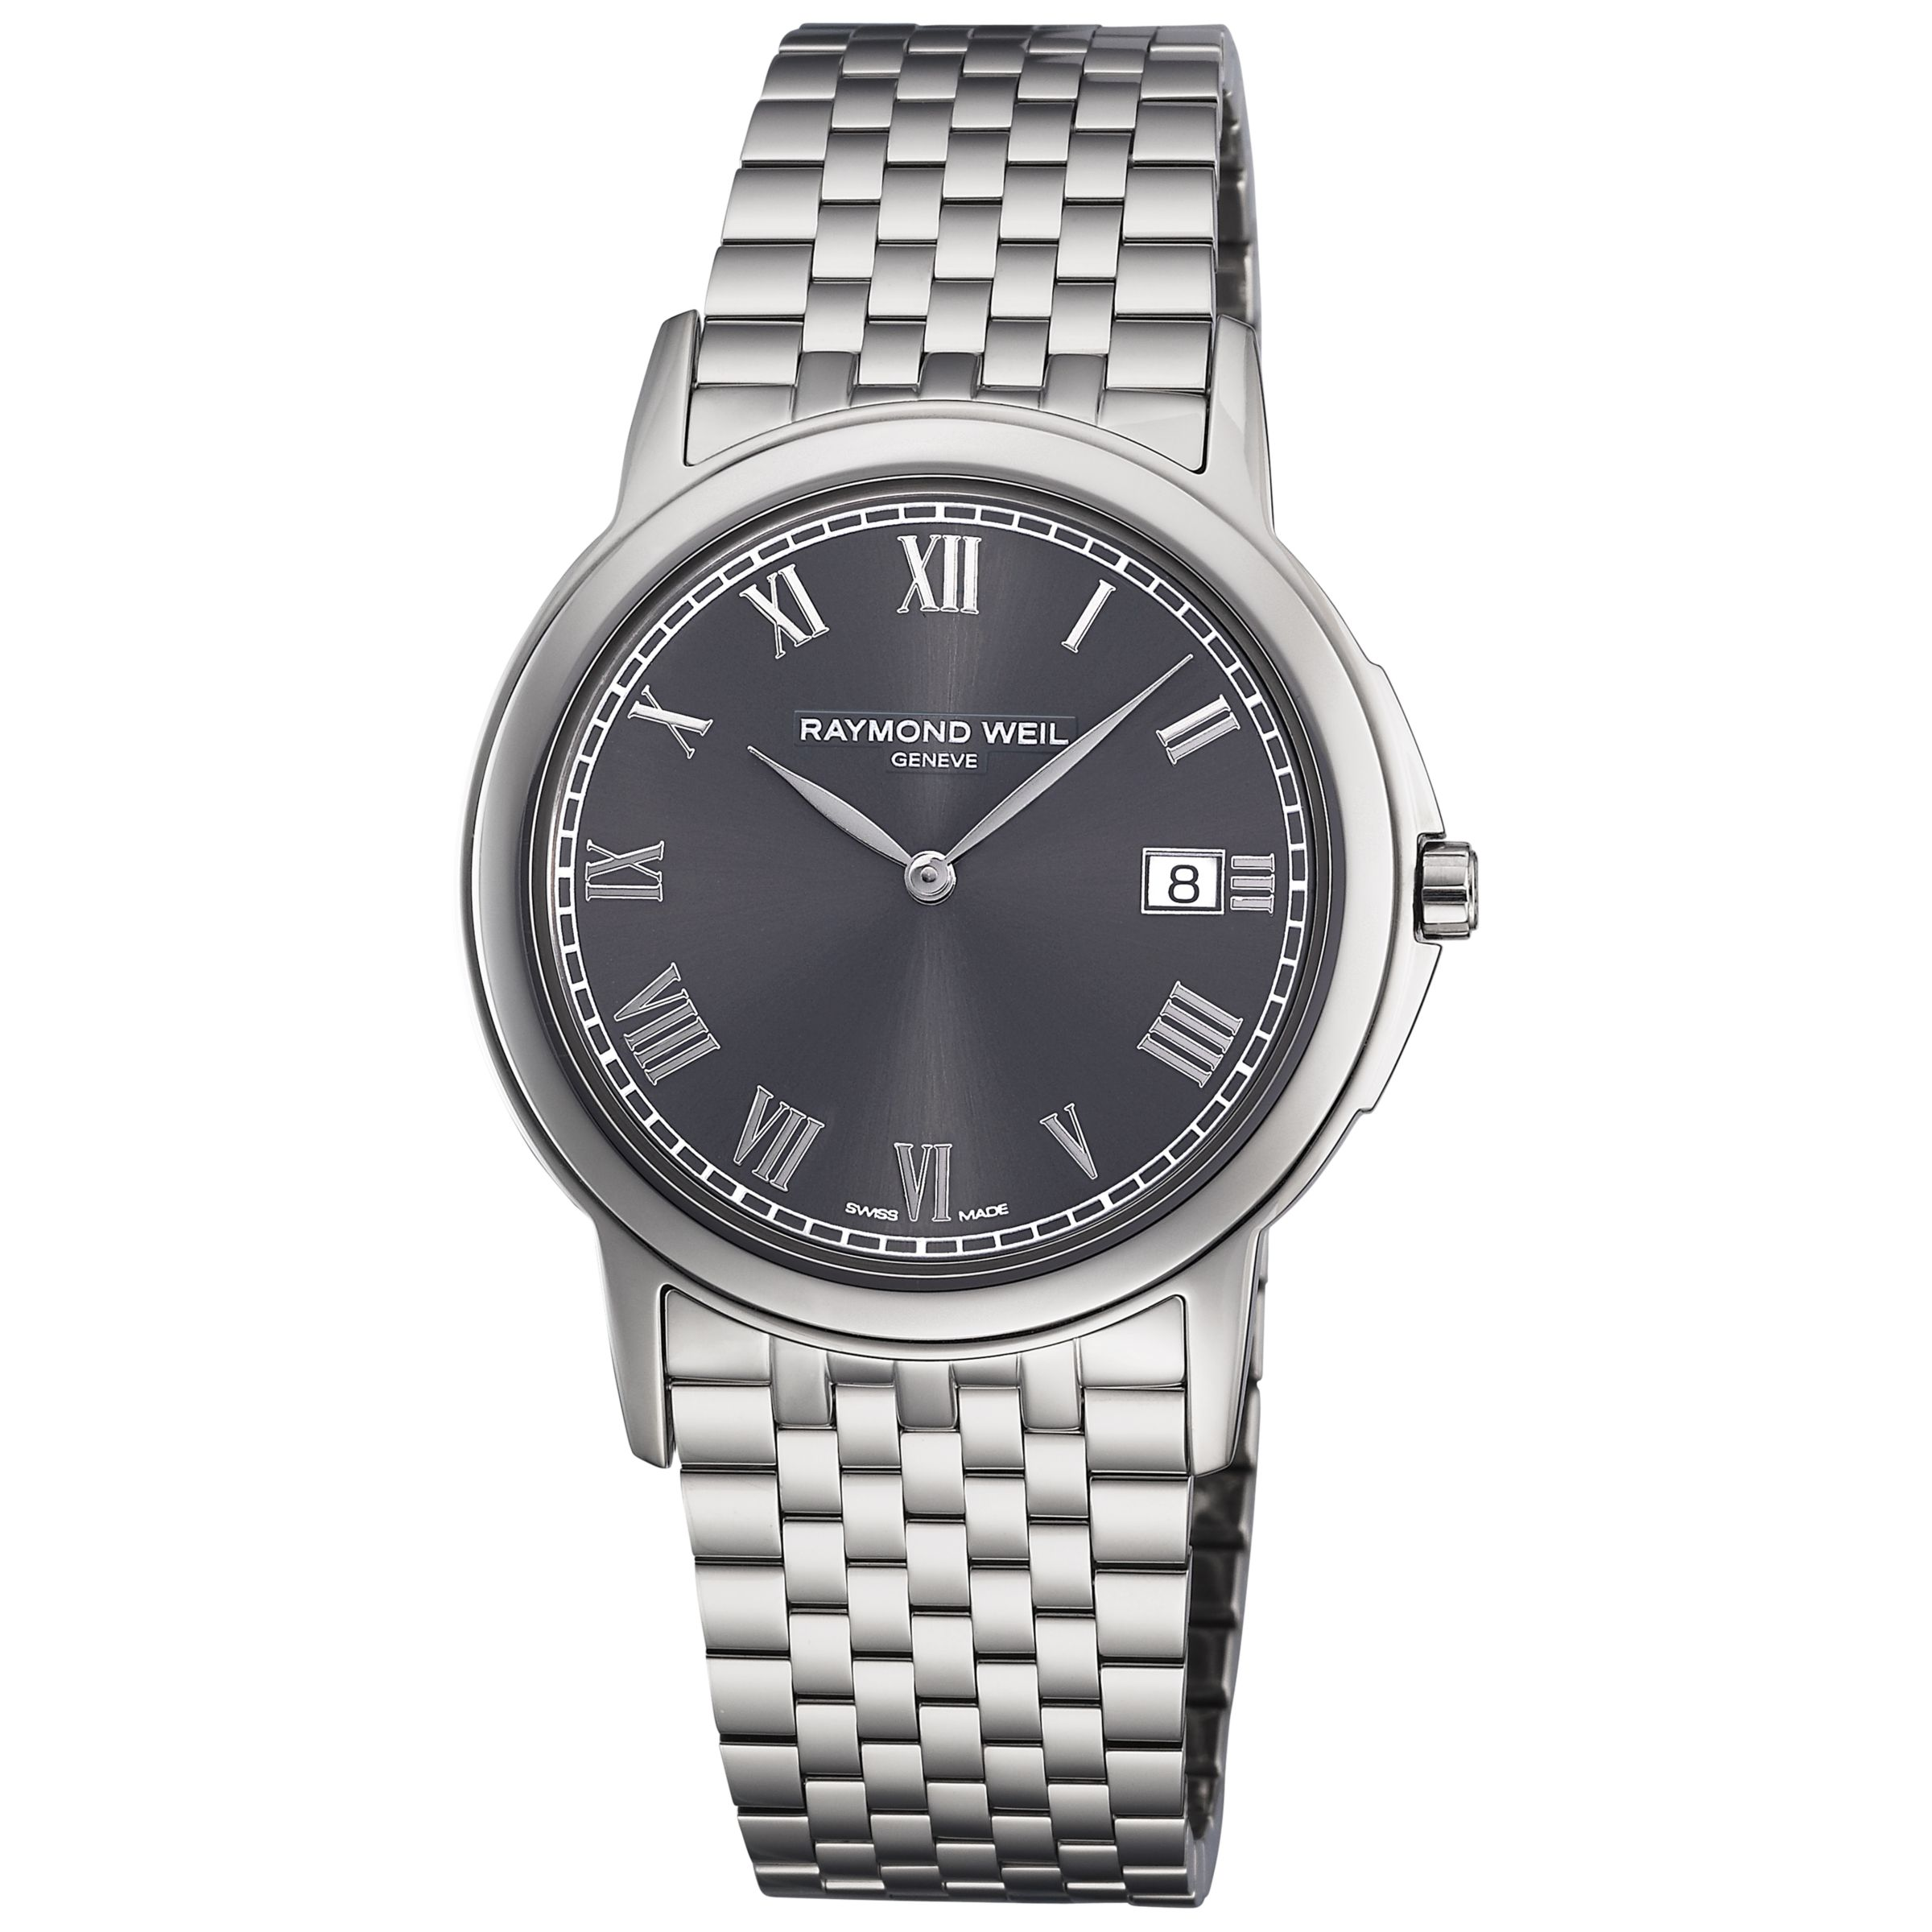 Raymond Weil 5466-ST-00608 Tradition Men